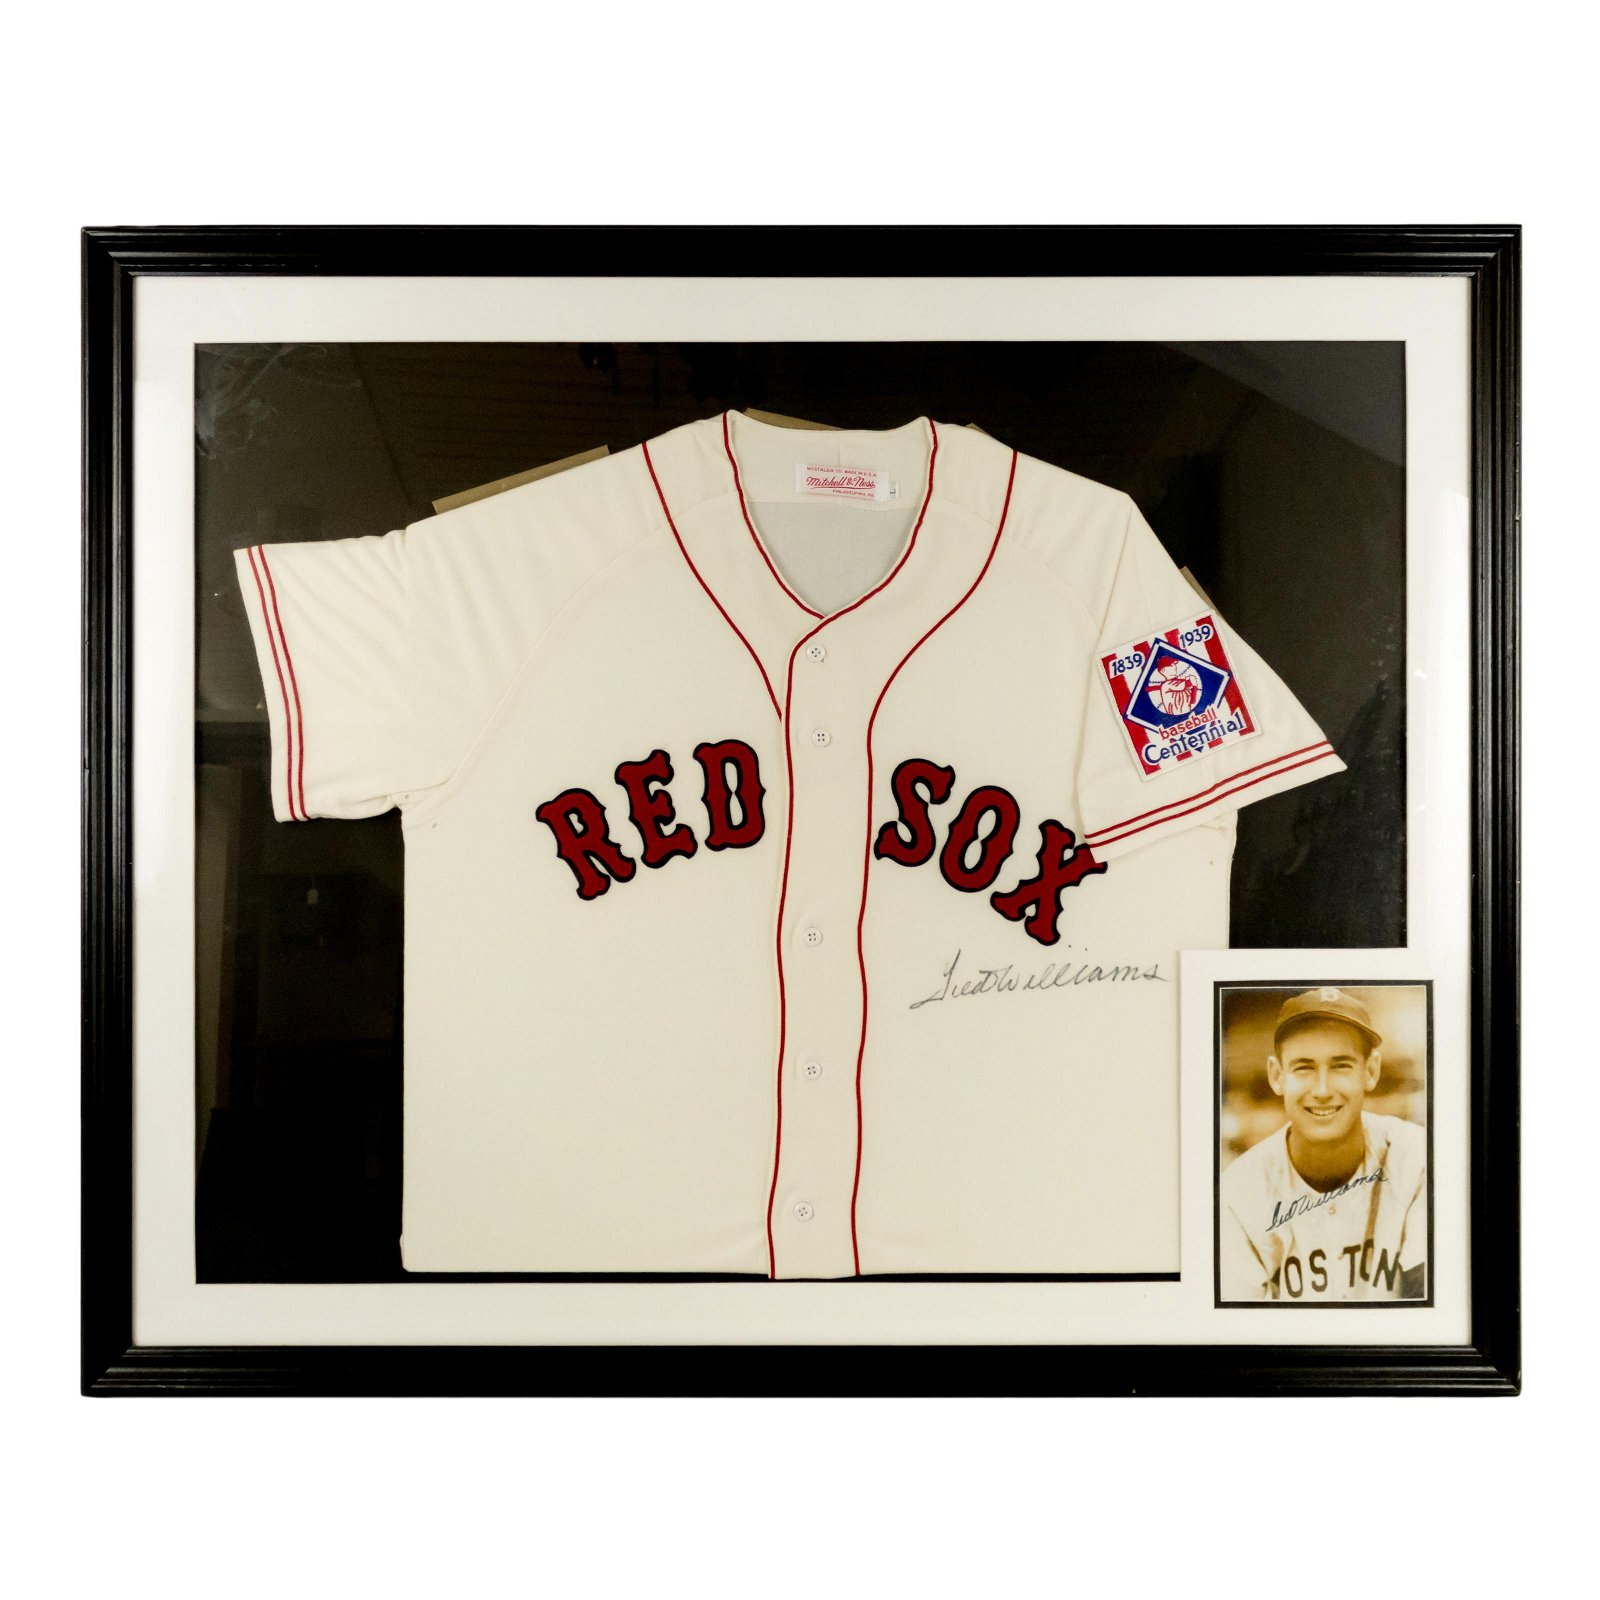 Ted Williams SIGNED Boston Red Sox Jersey & Photo